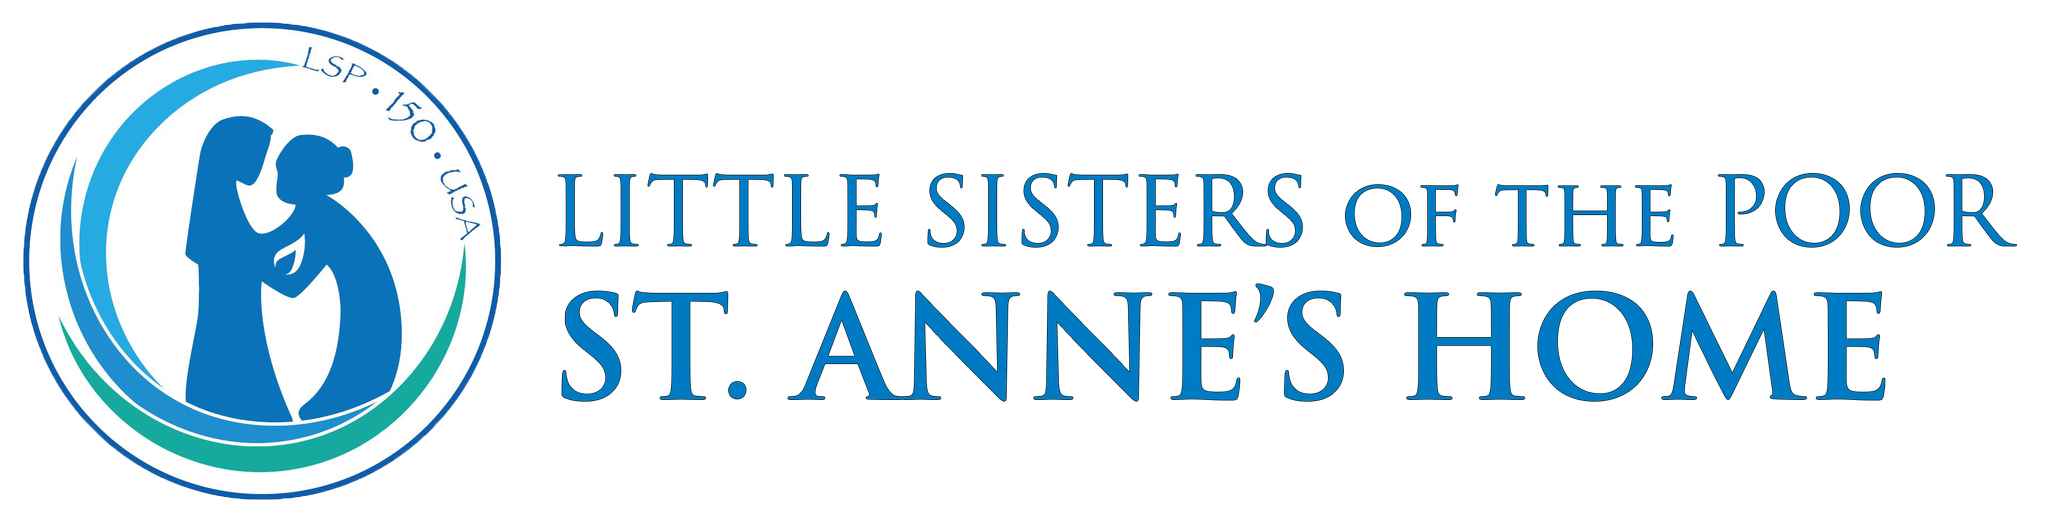 Little Sisters of the Poor San Francisco